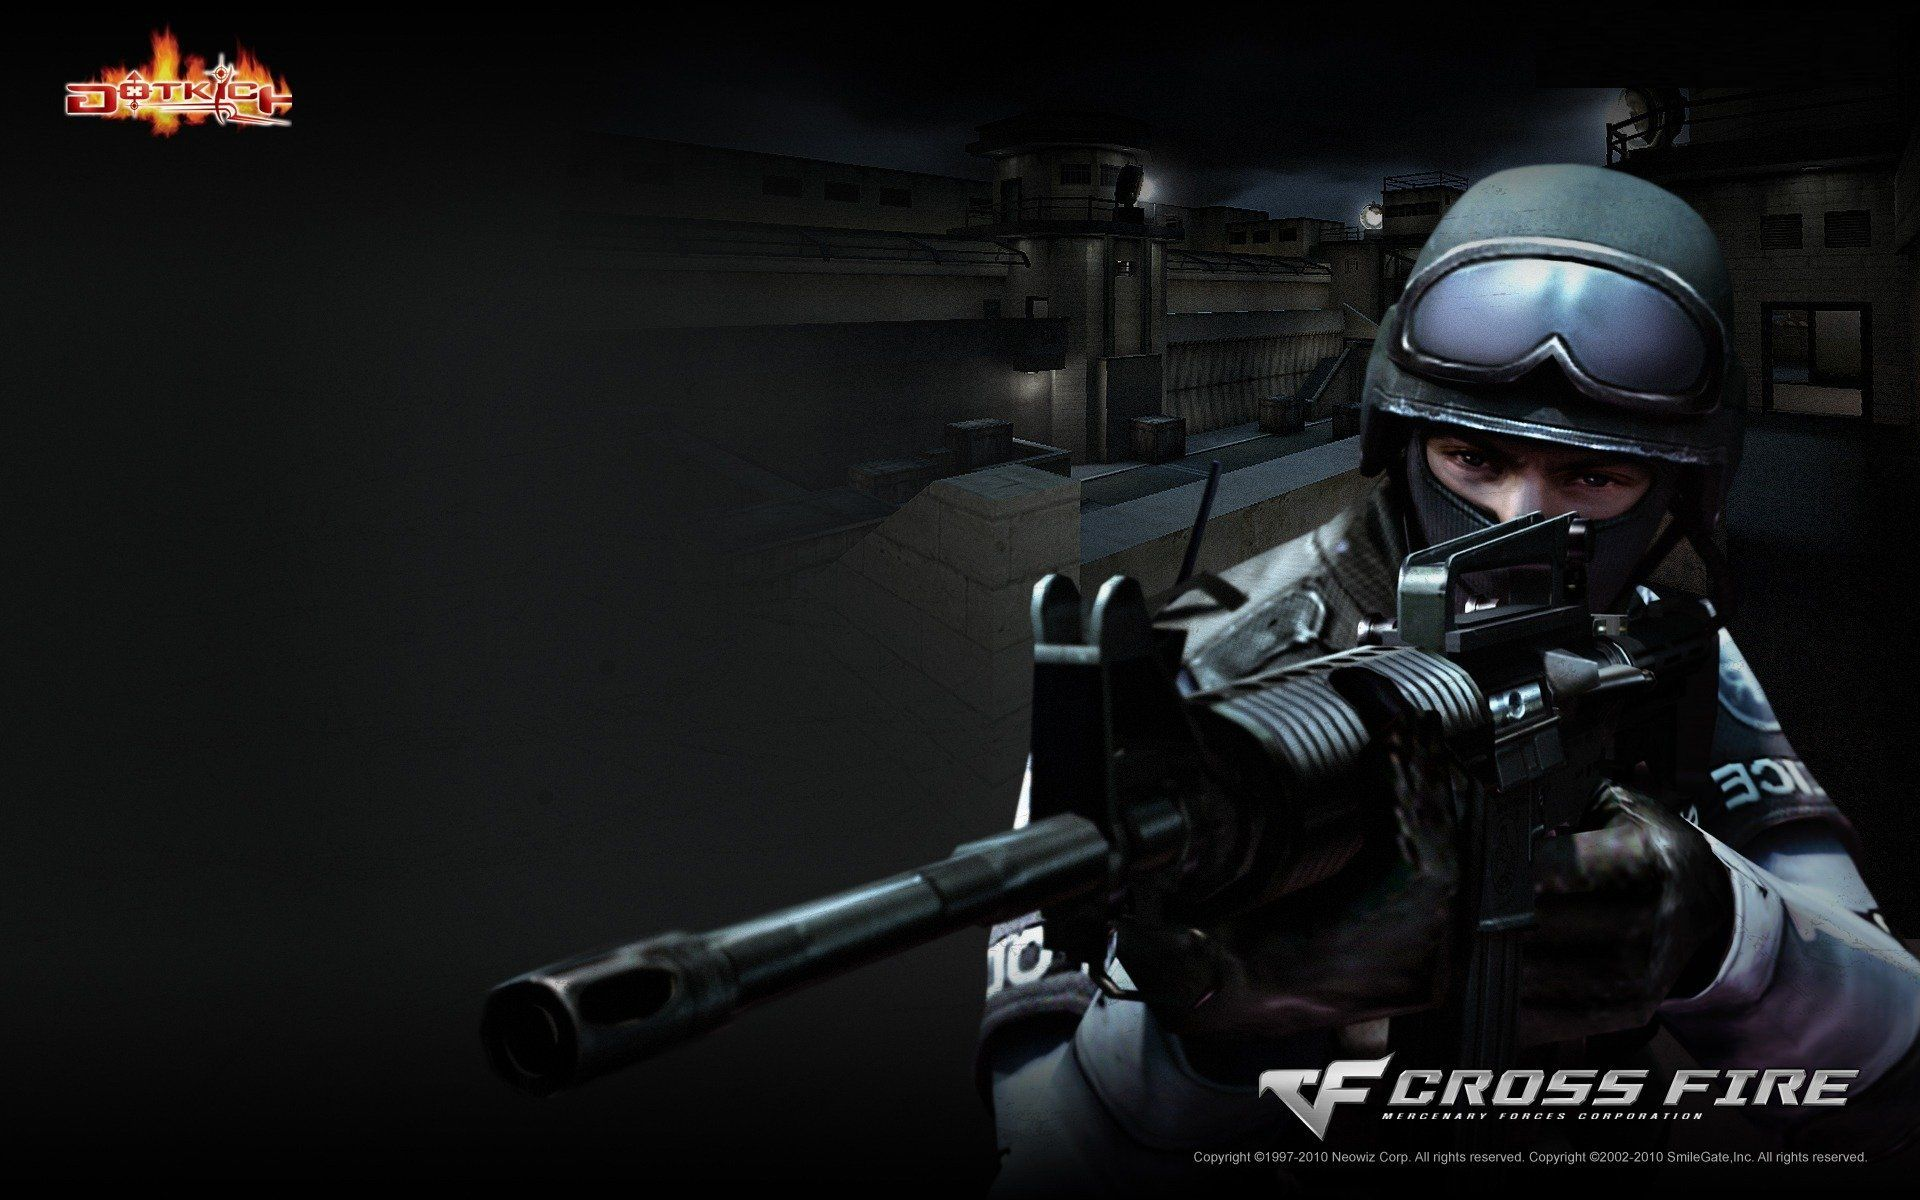 CrossFire Wallpapers on Behance 1920×1080 Crossfire